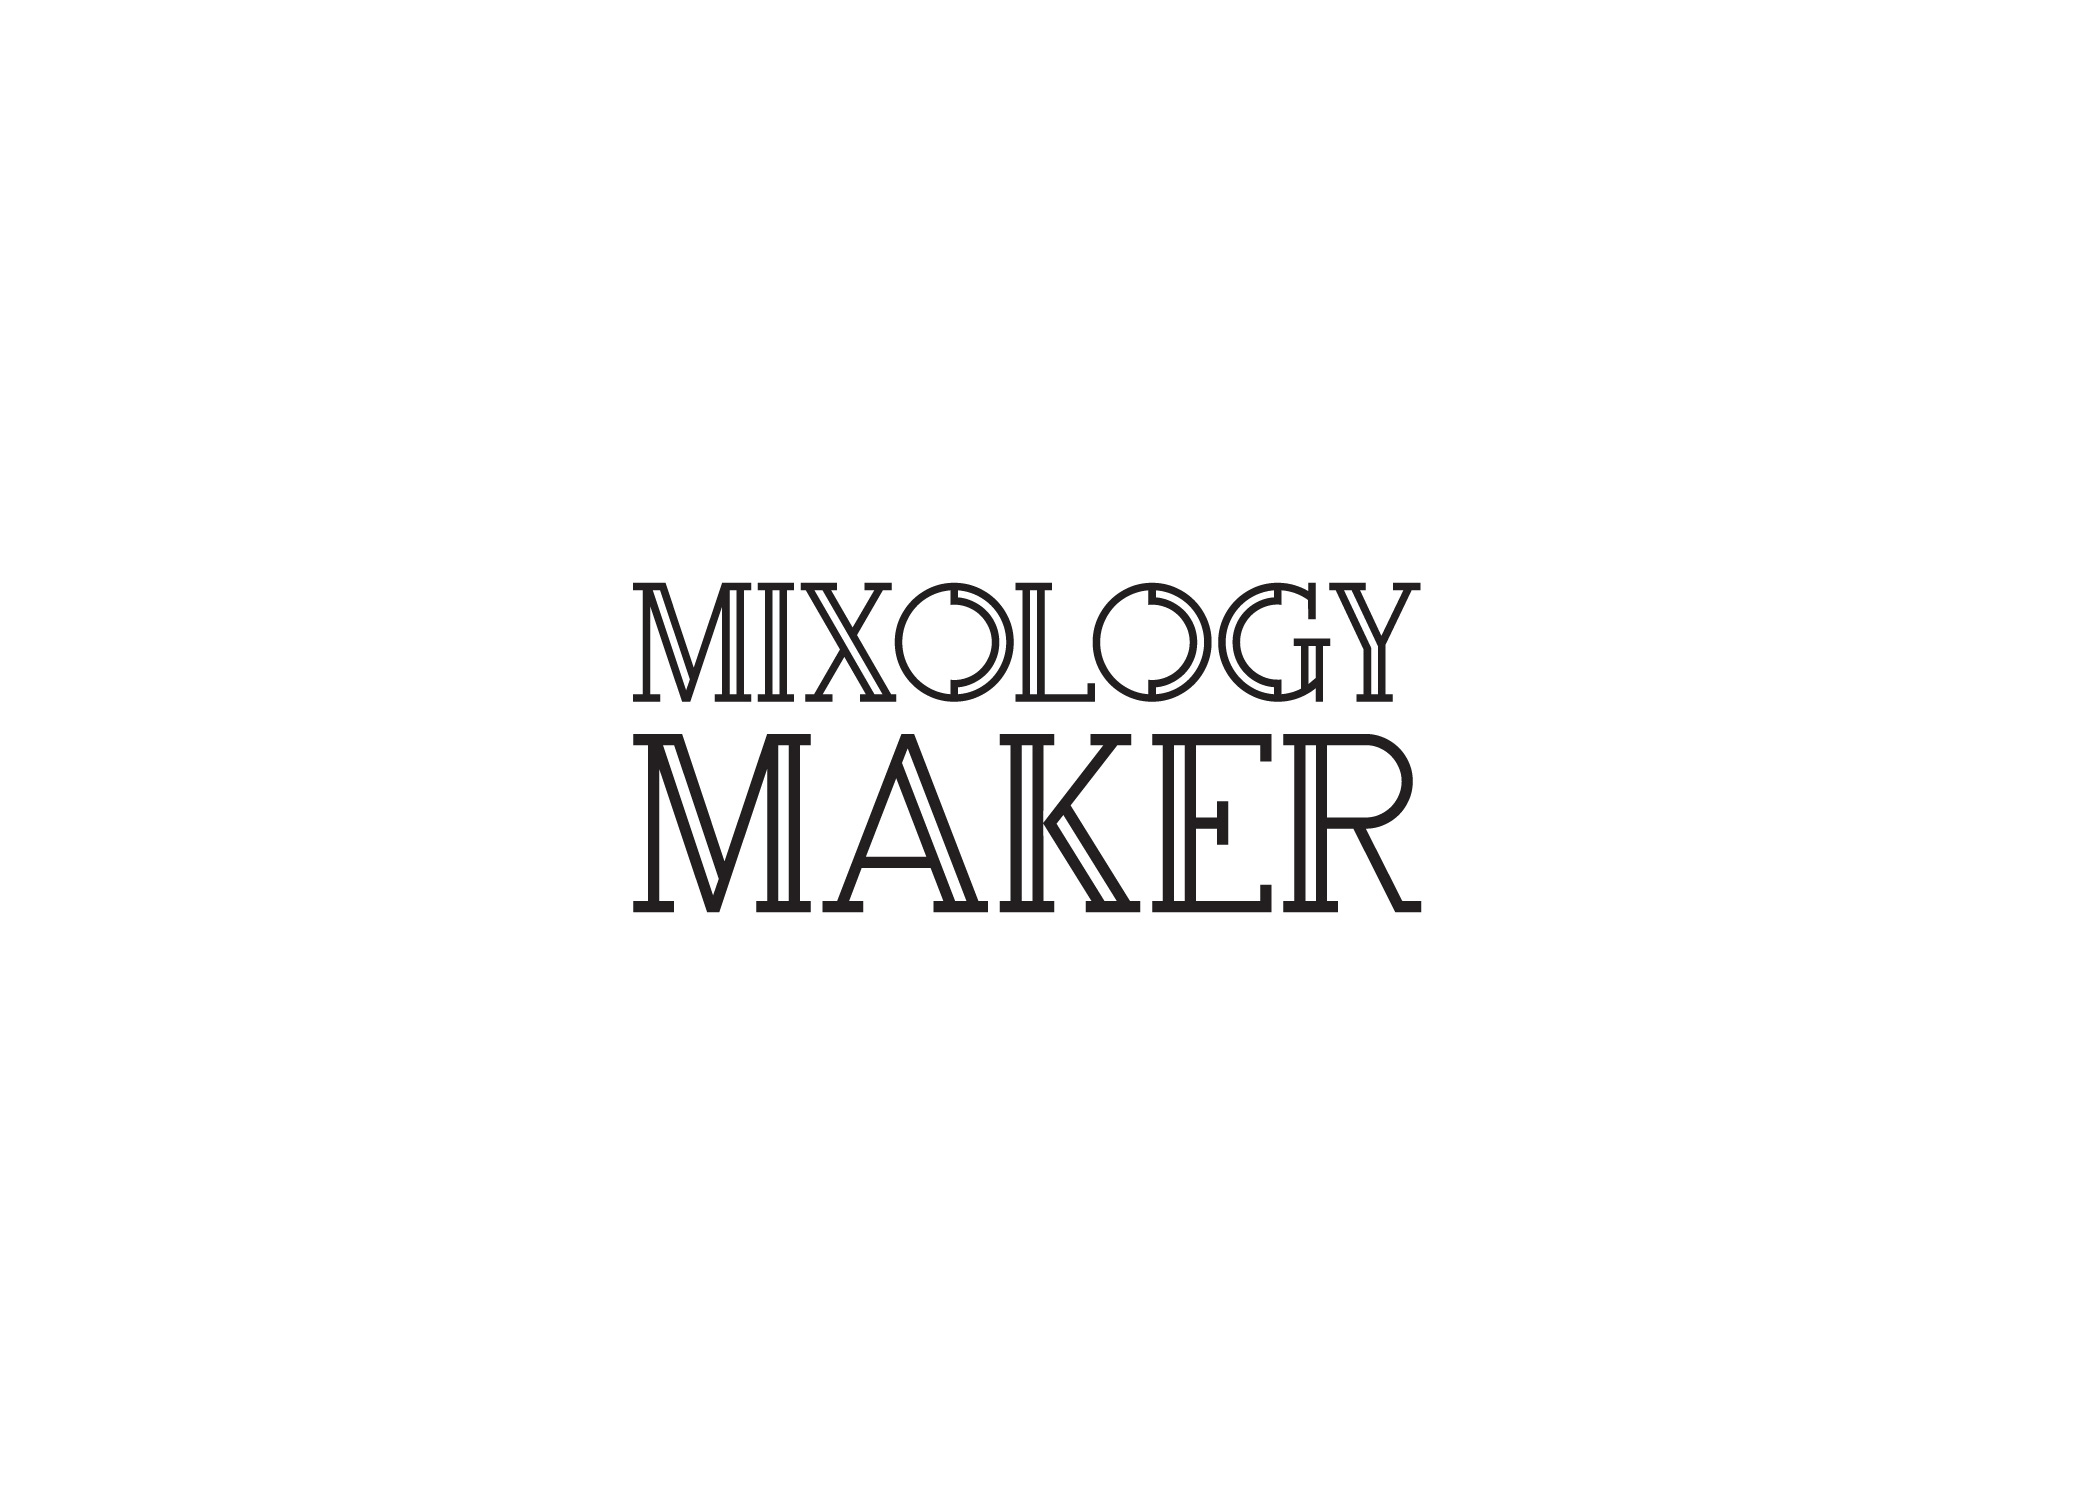 Mixology Maker casual logo design in black and white with slab serif font and hand drawn martini glass element.